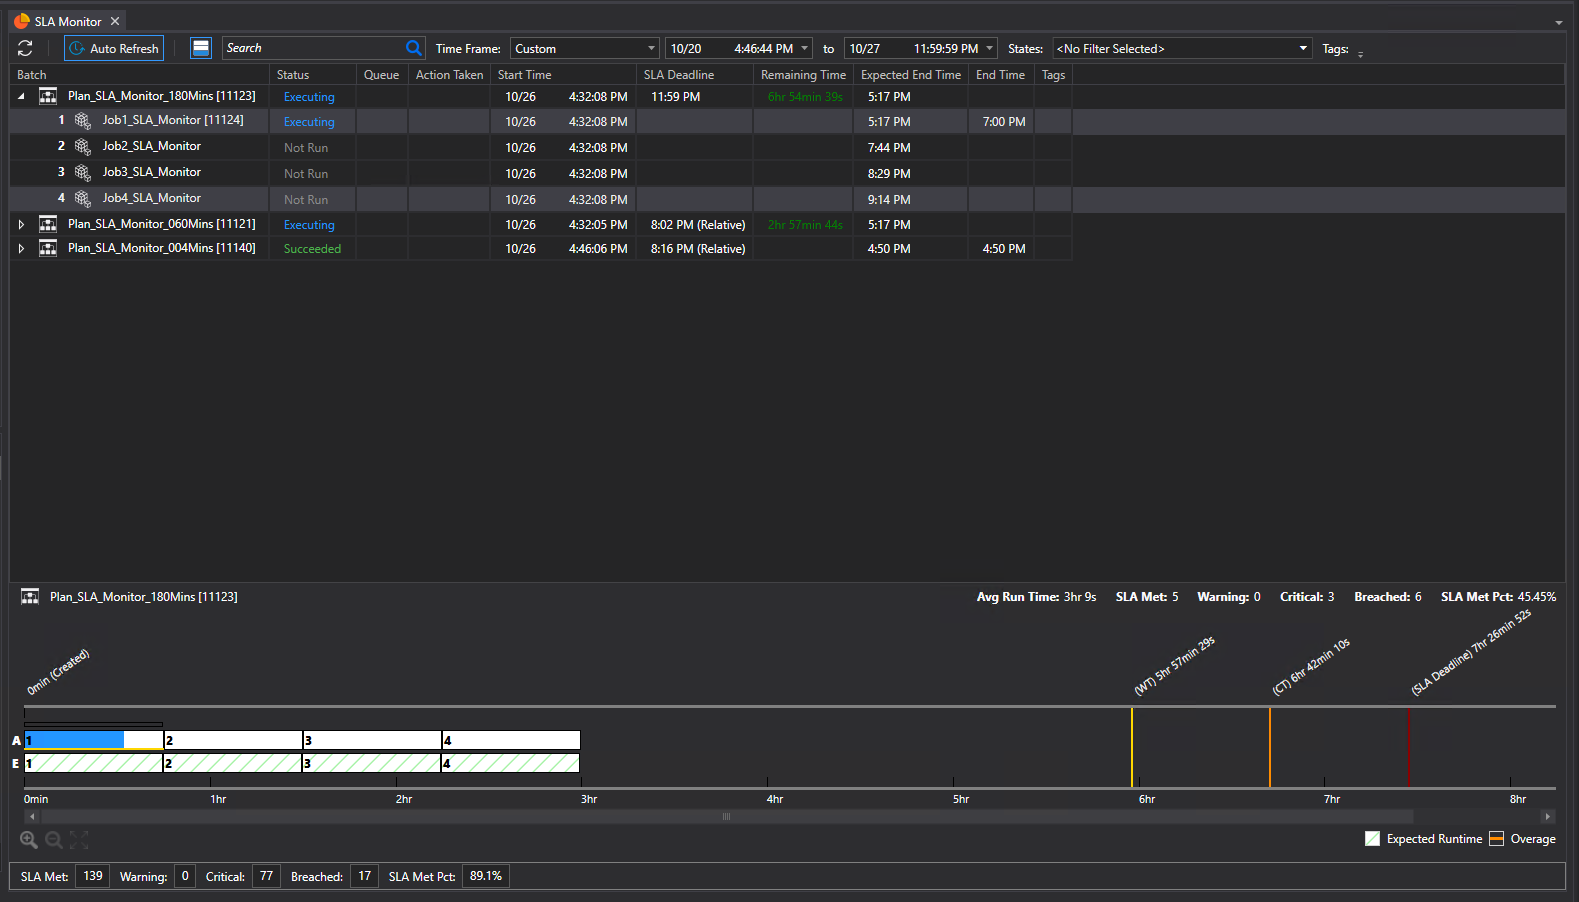 ActiveBatch SLA Monitor improves insight into critical SLA workflows.